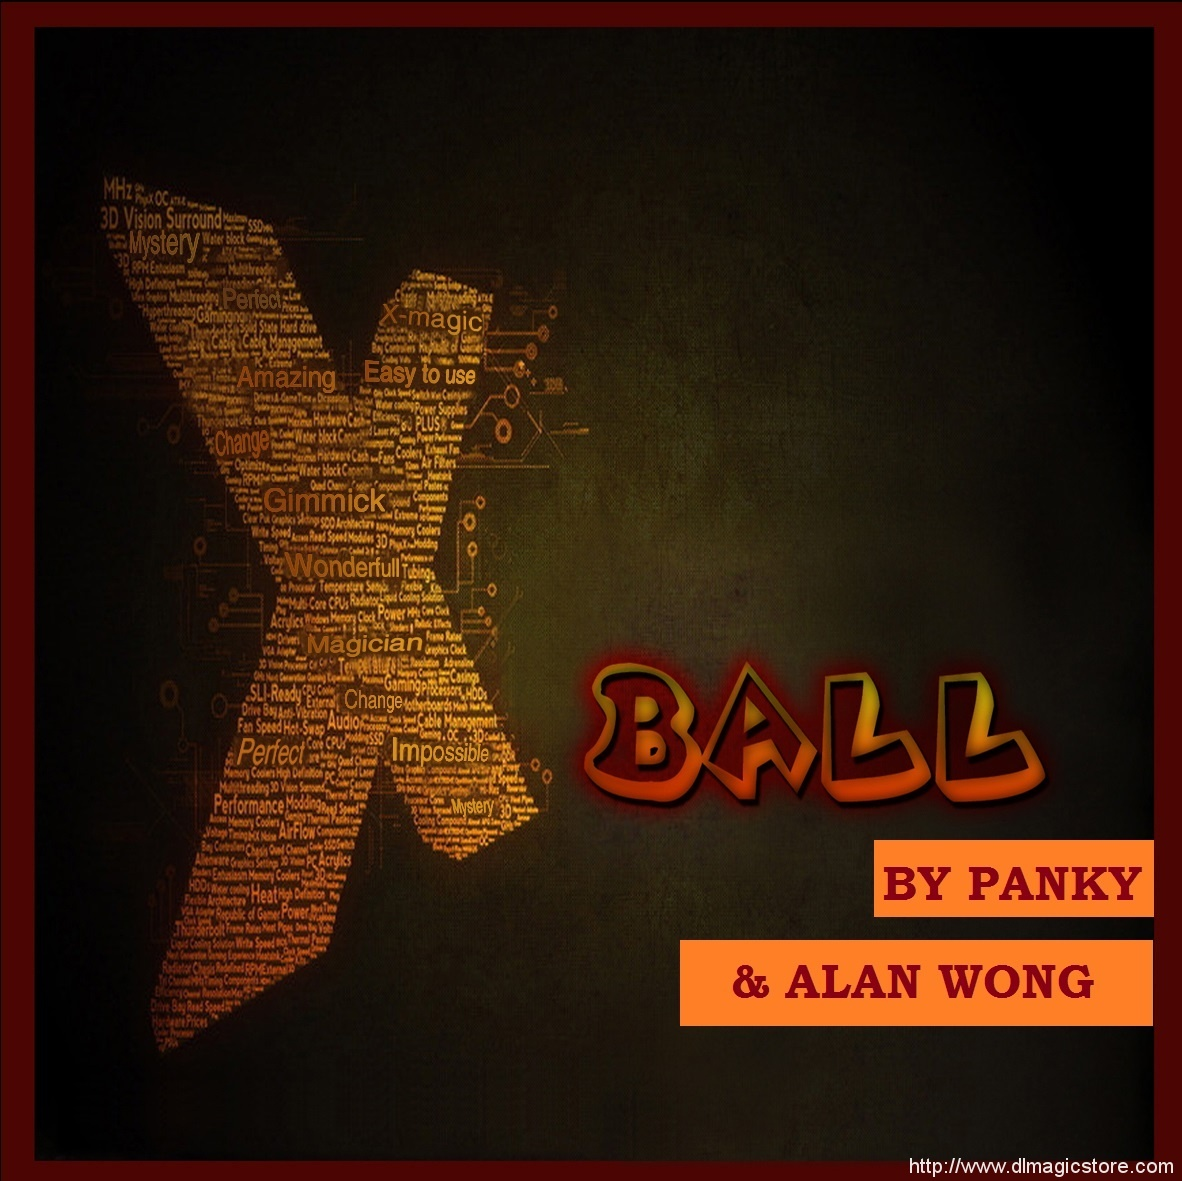 X-Ball by Panky and Alan Wong (Gimmick Not Included)